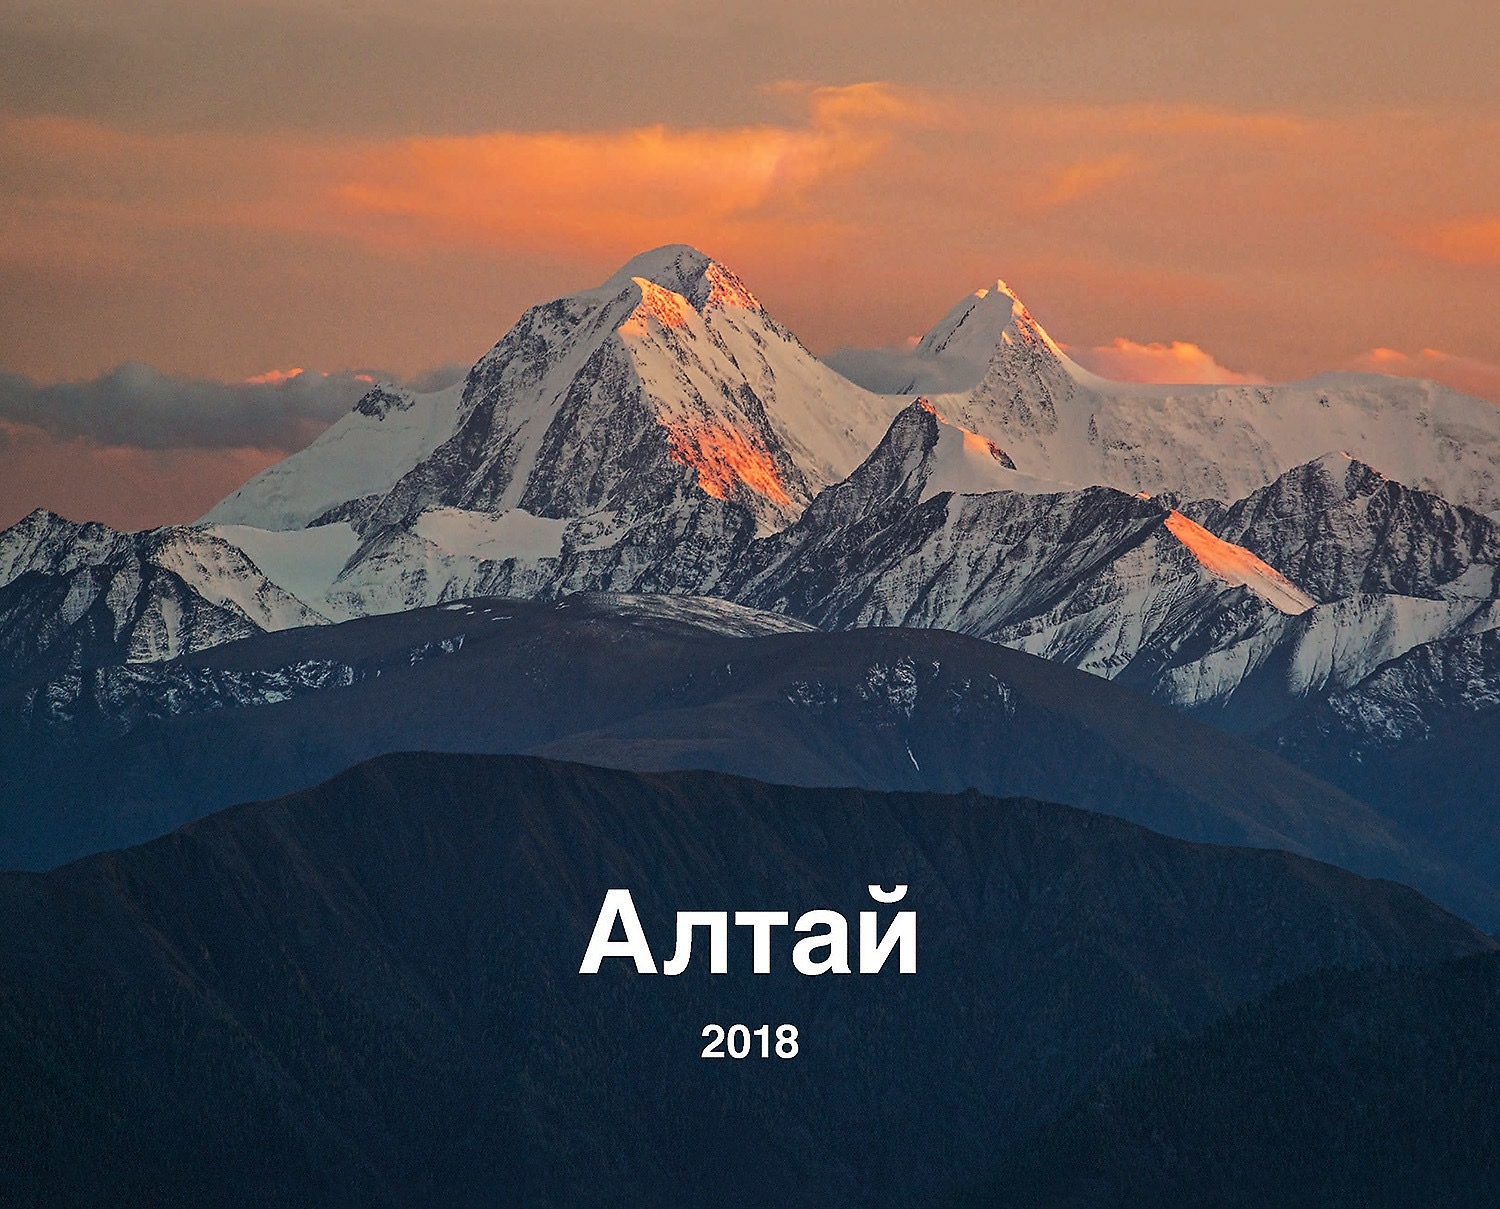 altay 2018